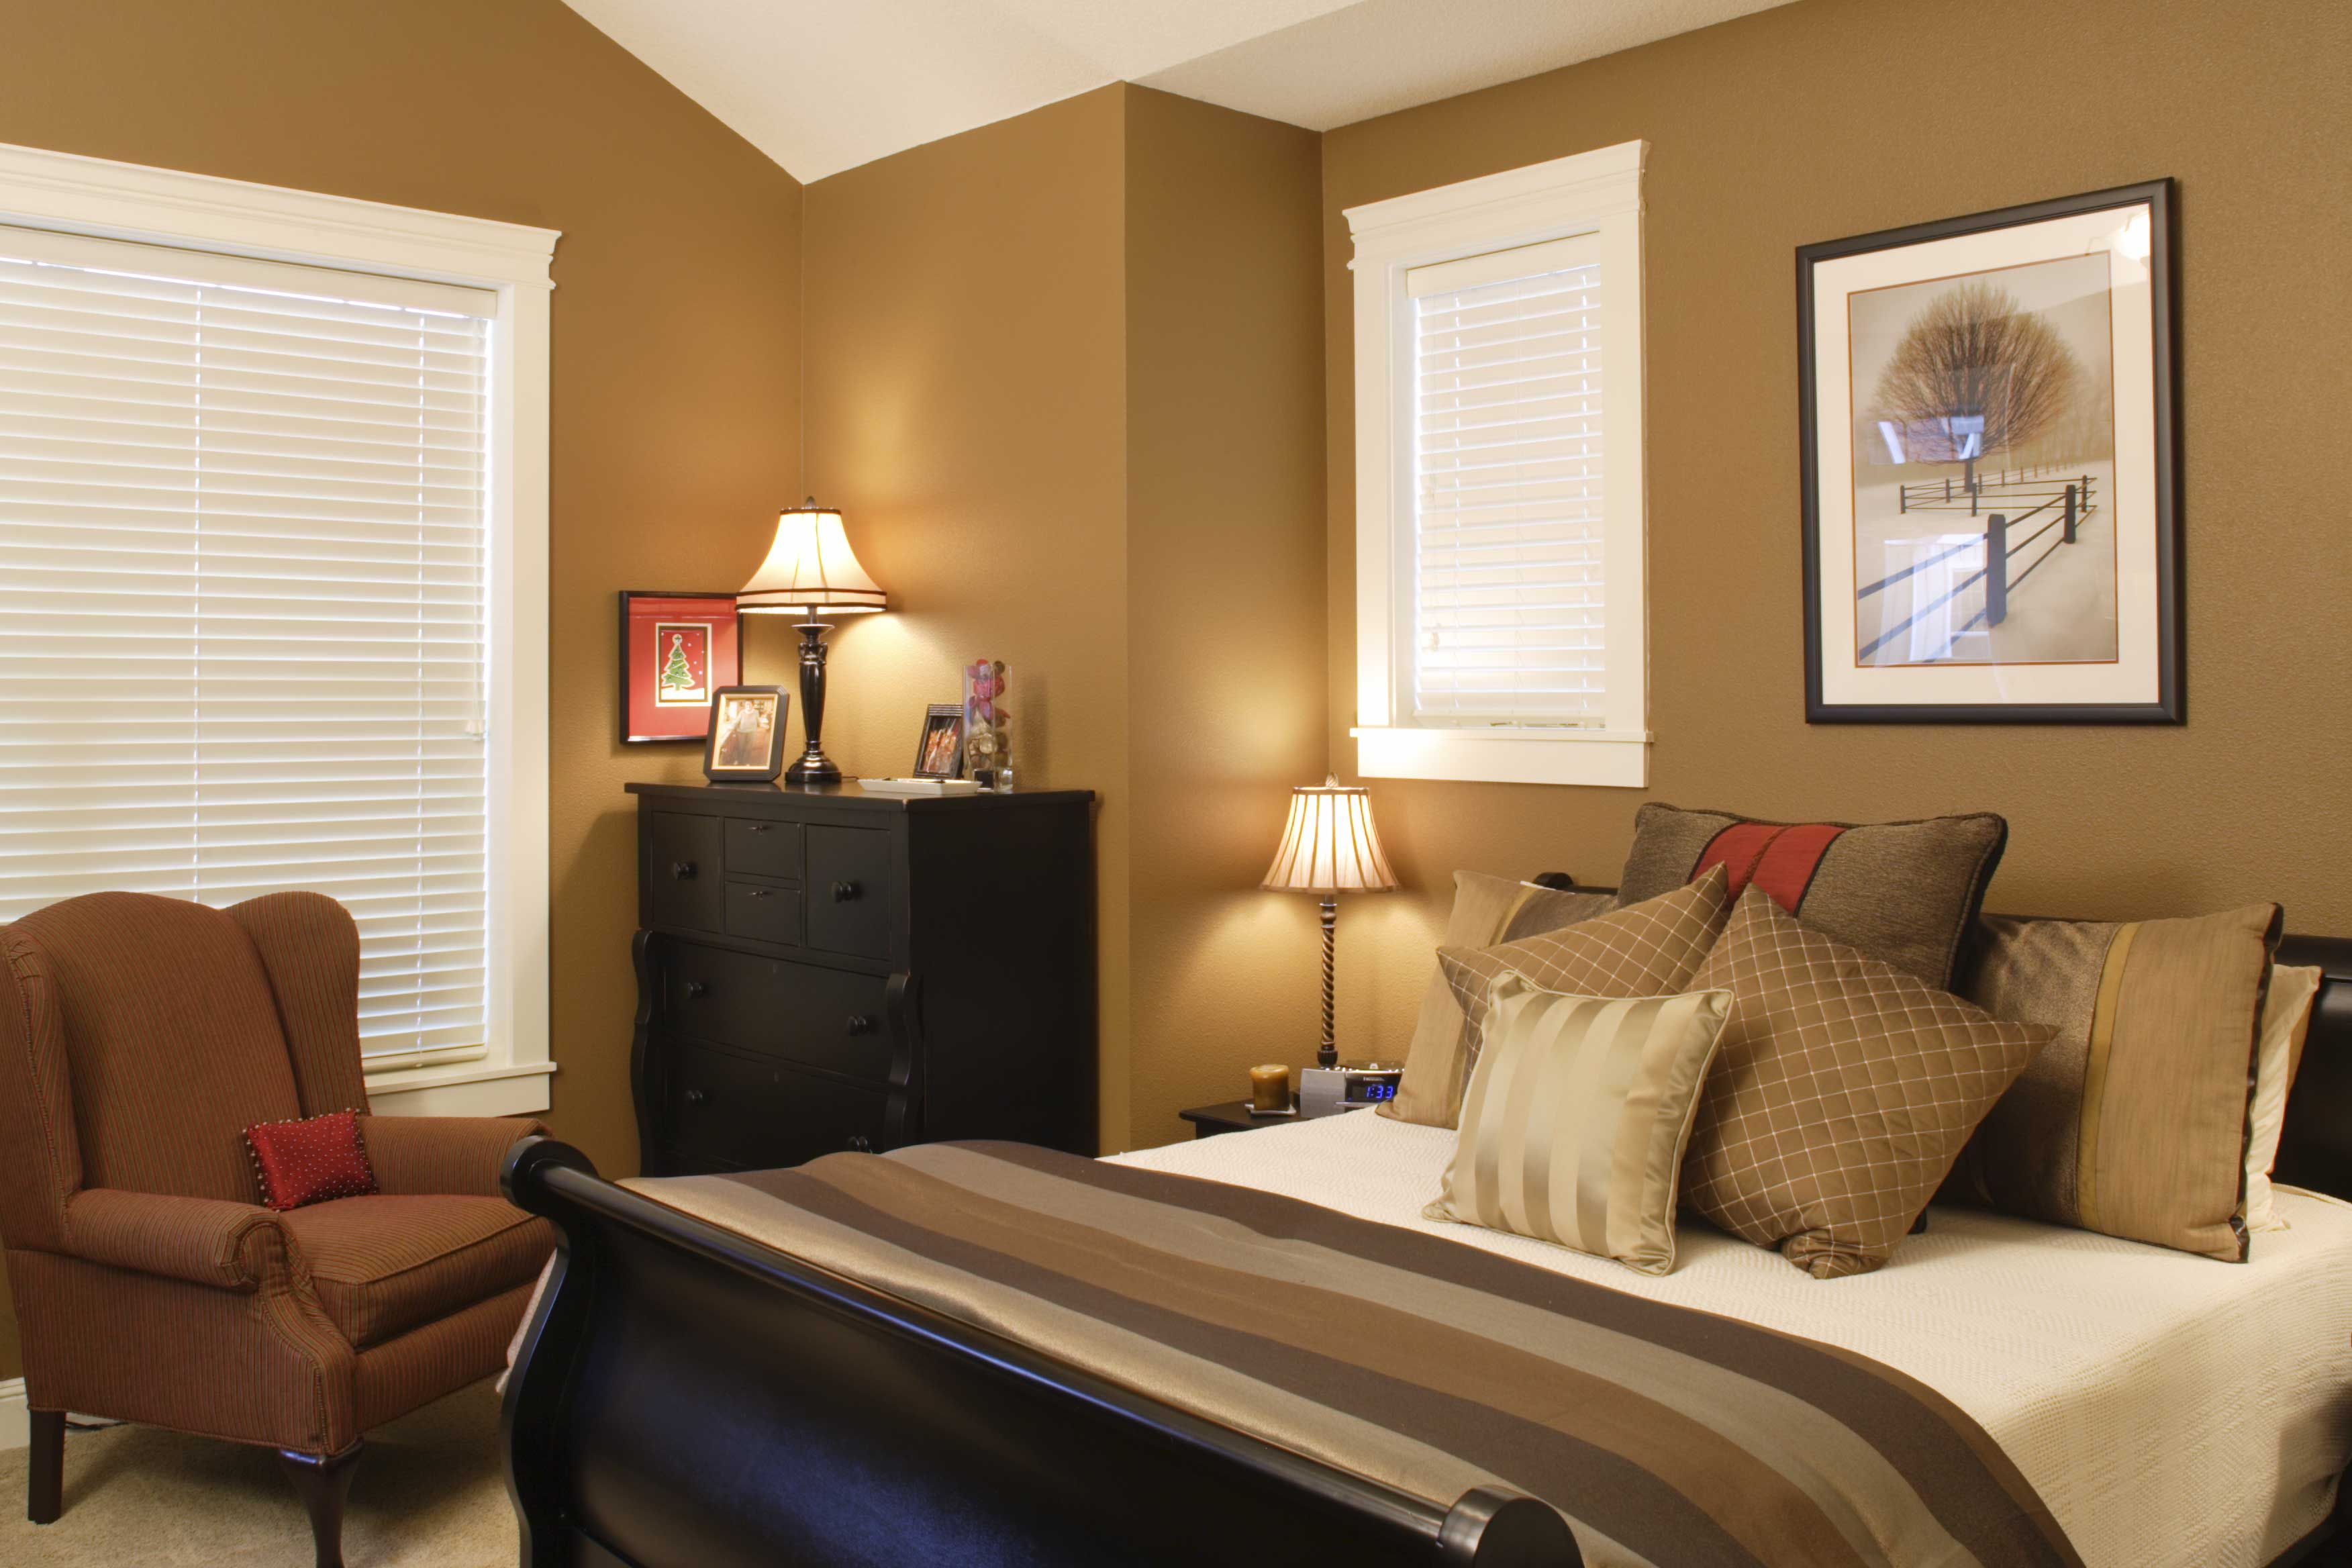 Master bedroom color schemes  interior paint colors  Cozy Retreat A Newly Painted Bedroom